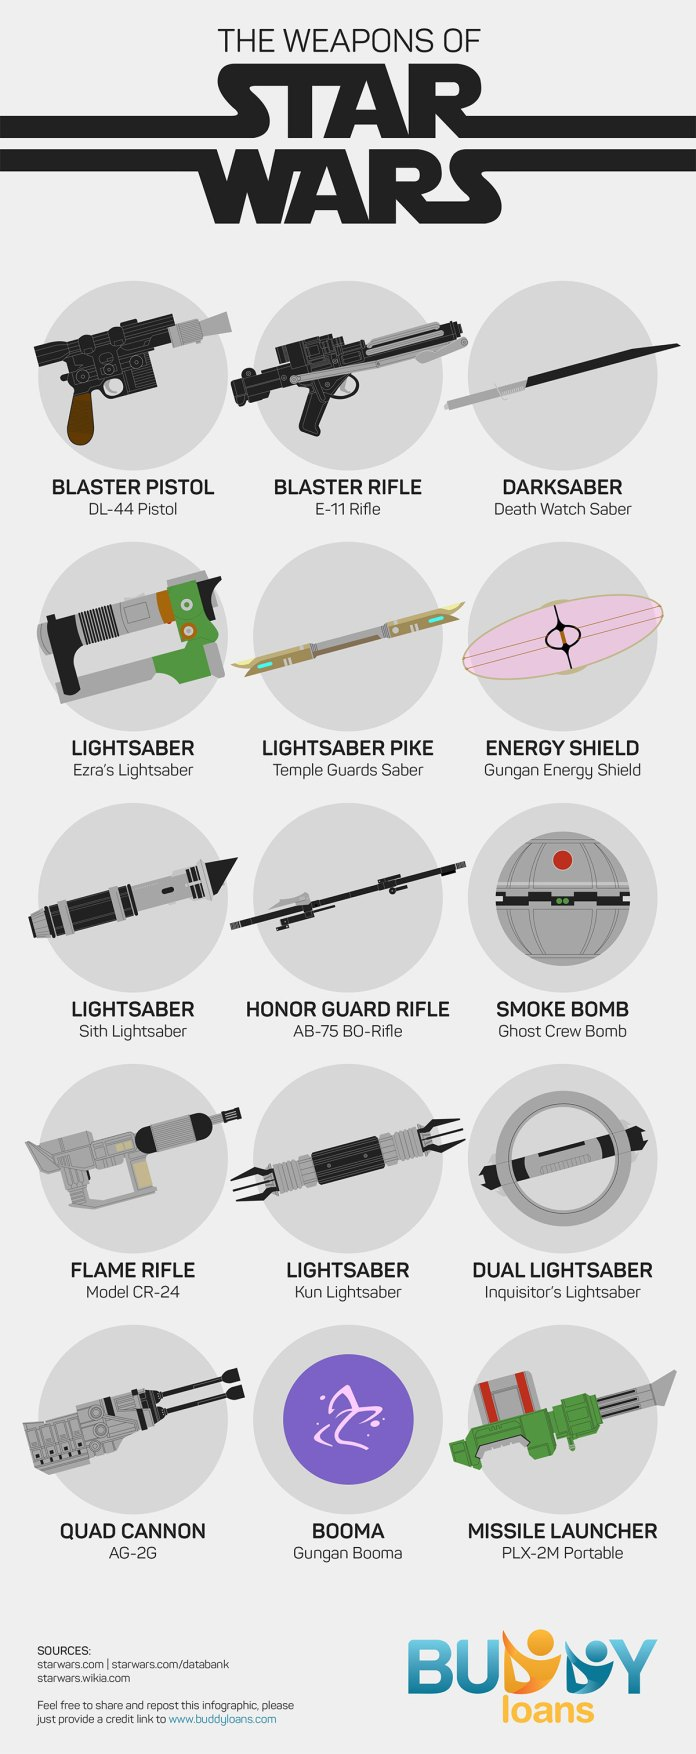 The Weapons of Star Wars